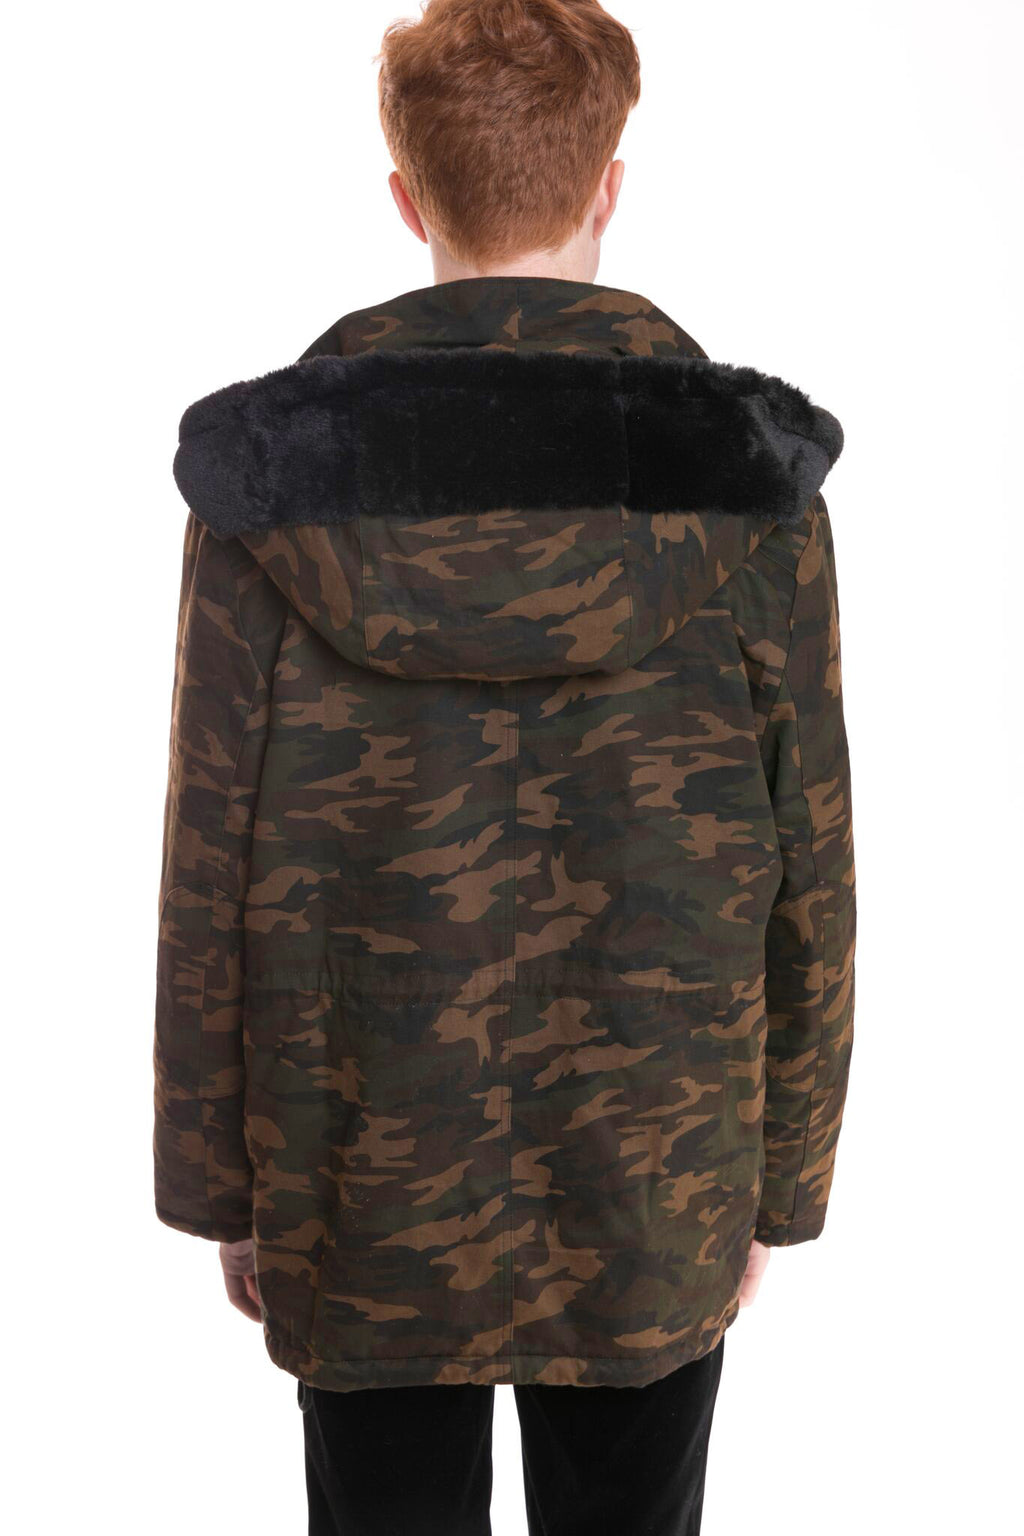 Unisex Camouflage Jacket with Faux Fur Trim